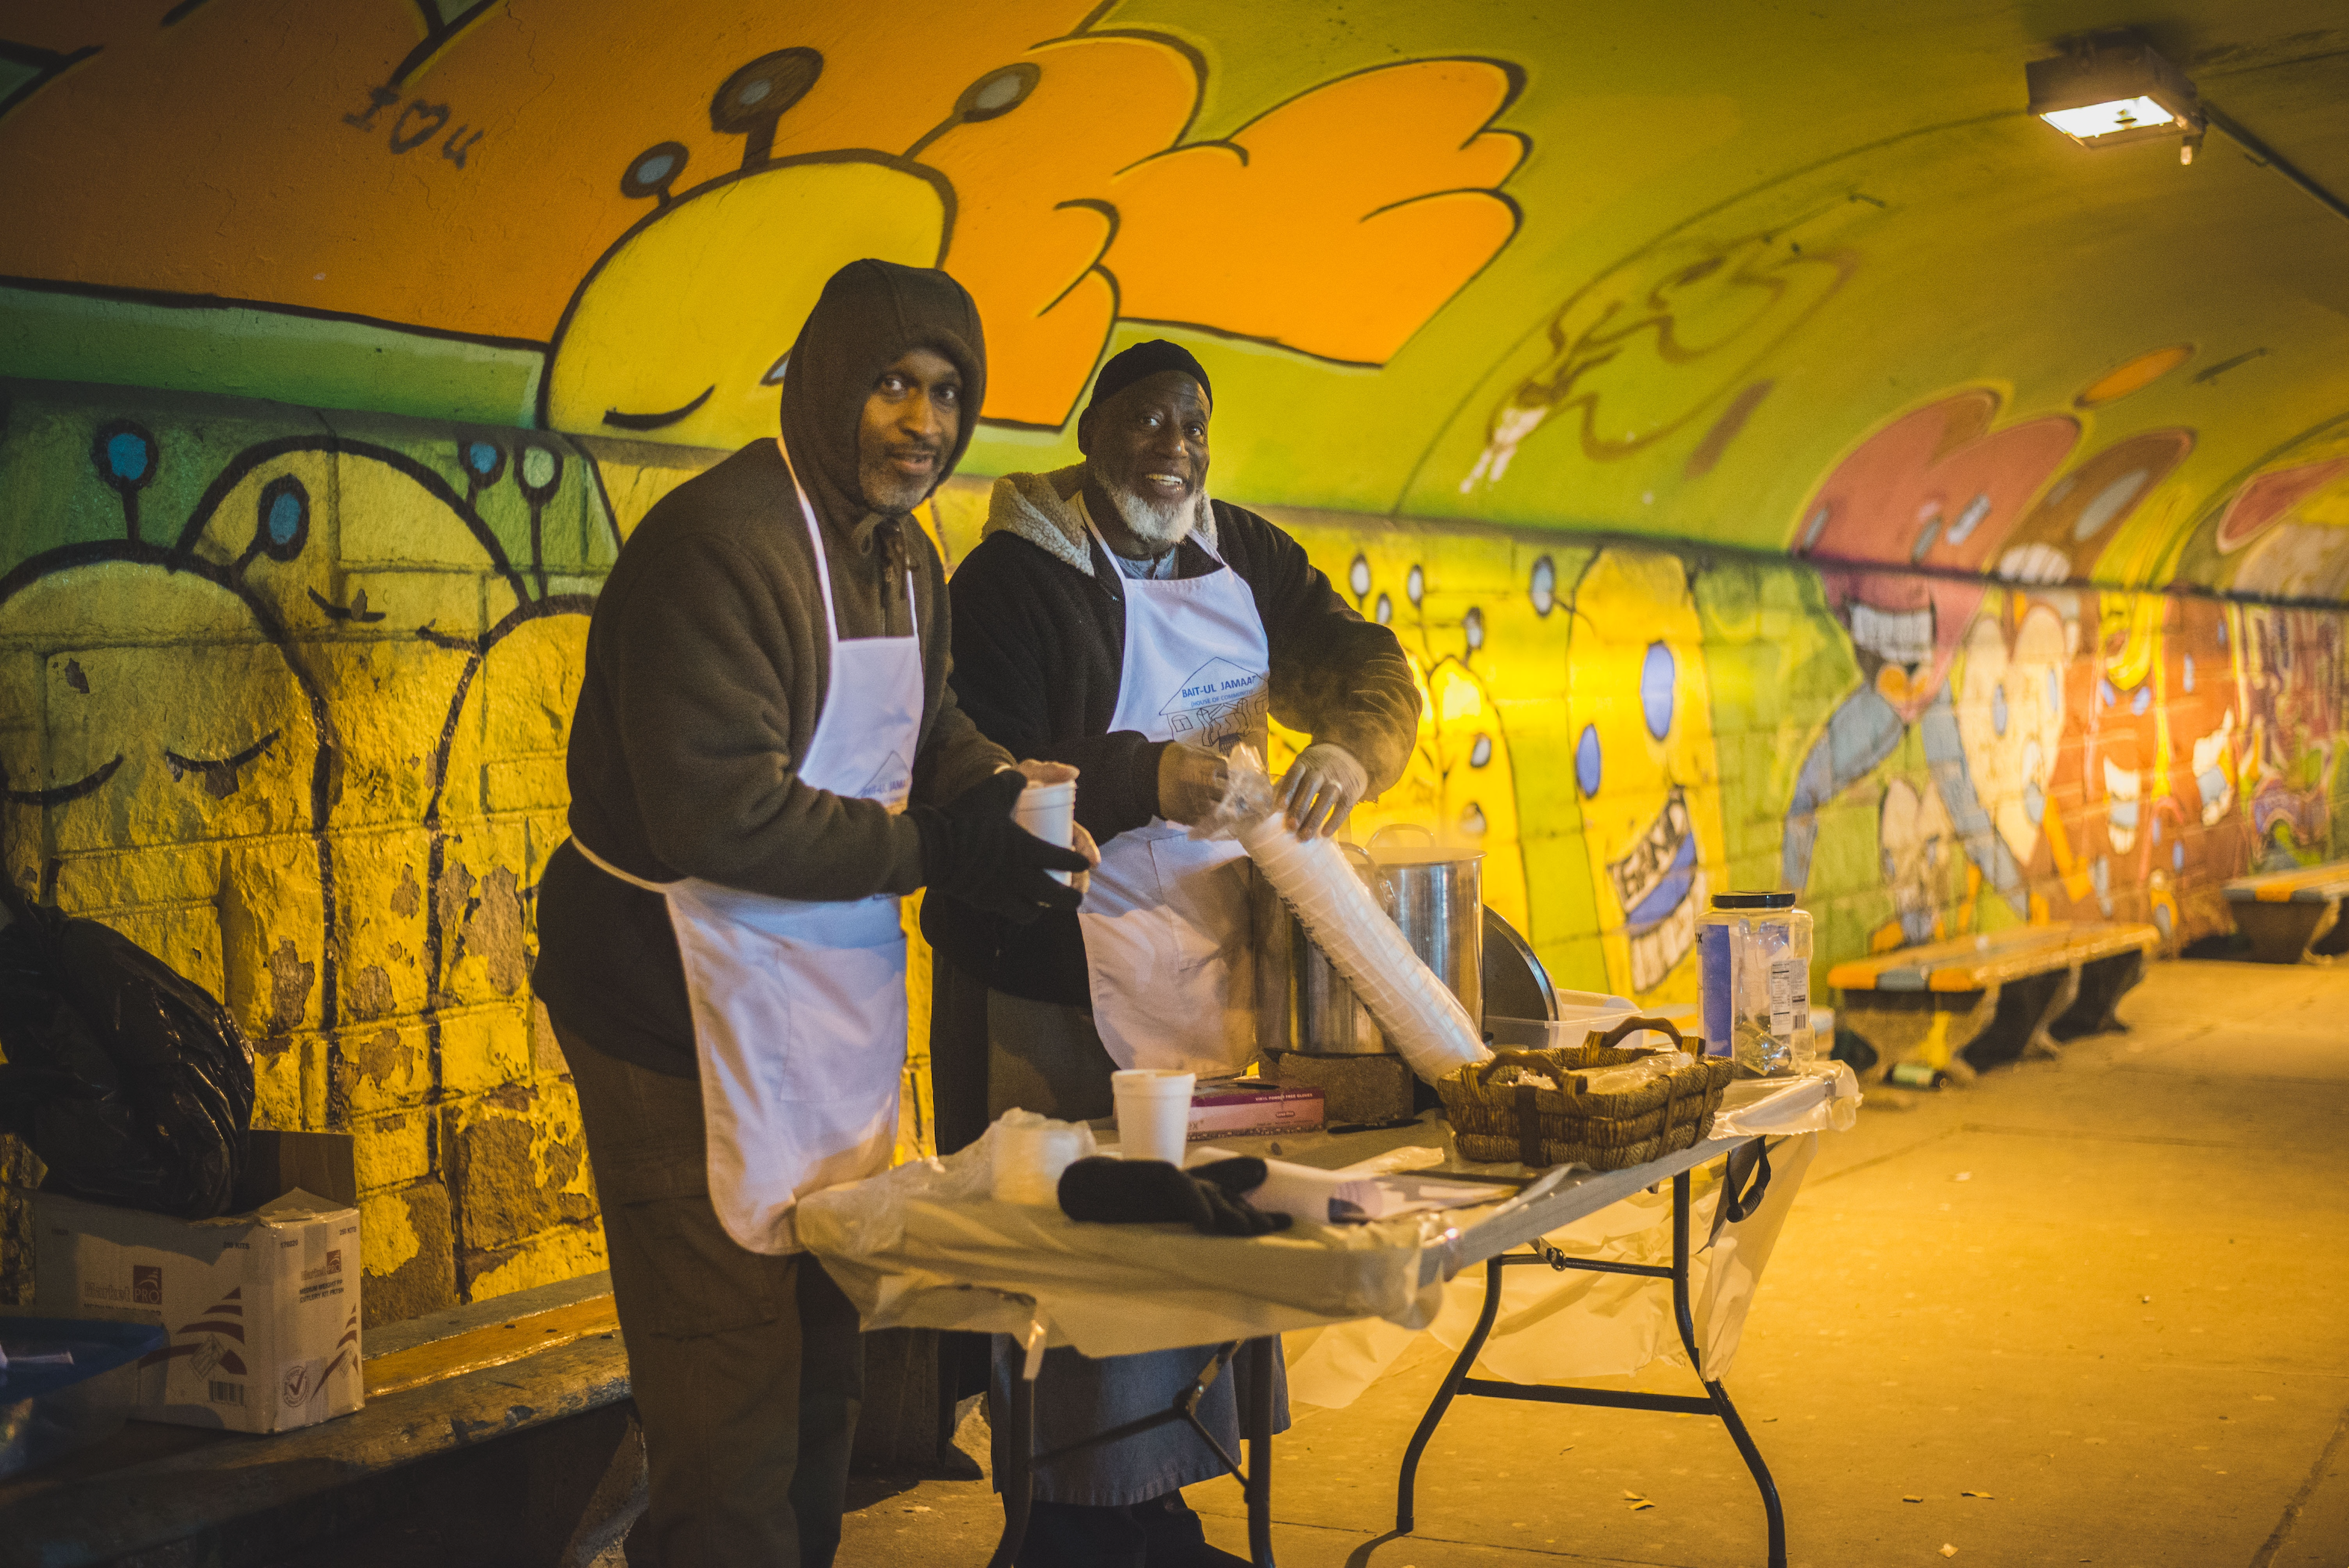 Local Community Vendors setting up urban food station for needy